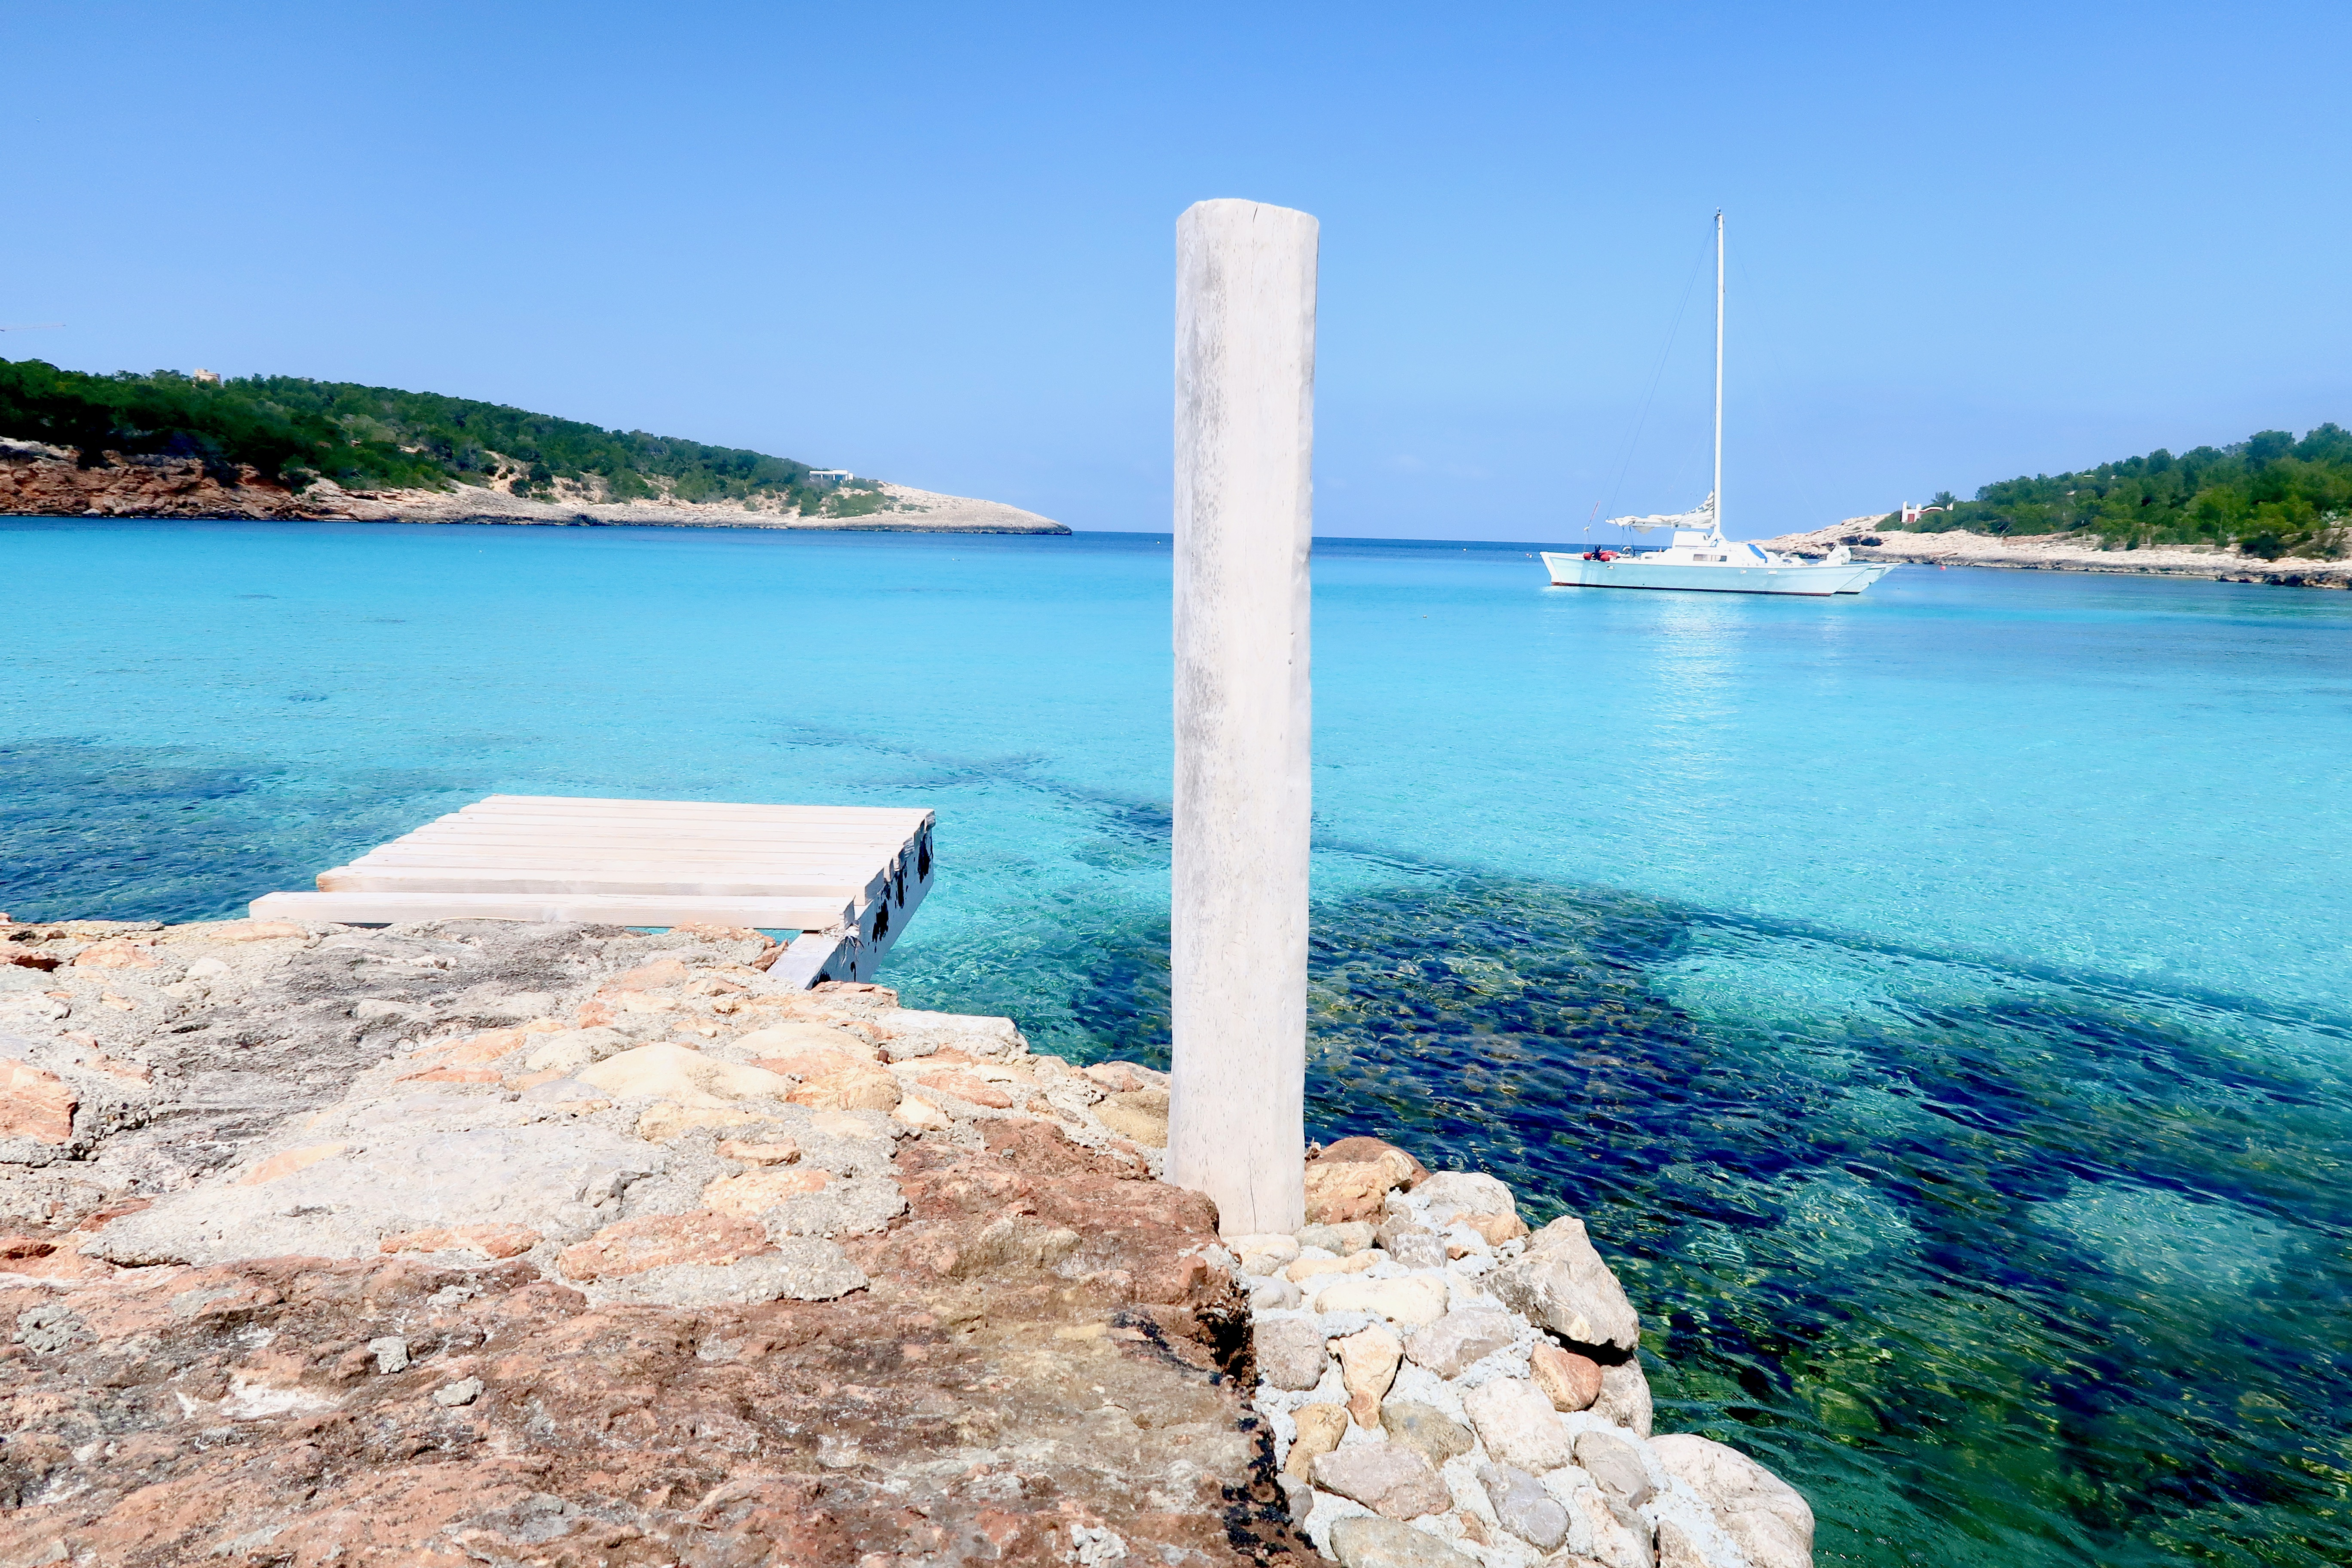 Wanderlust - where can I relax in Ibiza? Portinatx is a gorgeous town in the north of Ibiza and perfect for grabbing Instagram grid images of envy   Travel tips   Elle Blonde Luxury Lifestyle Destination Blog